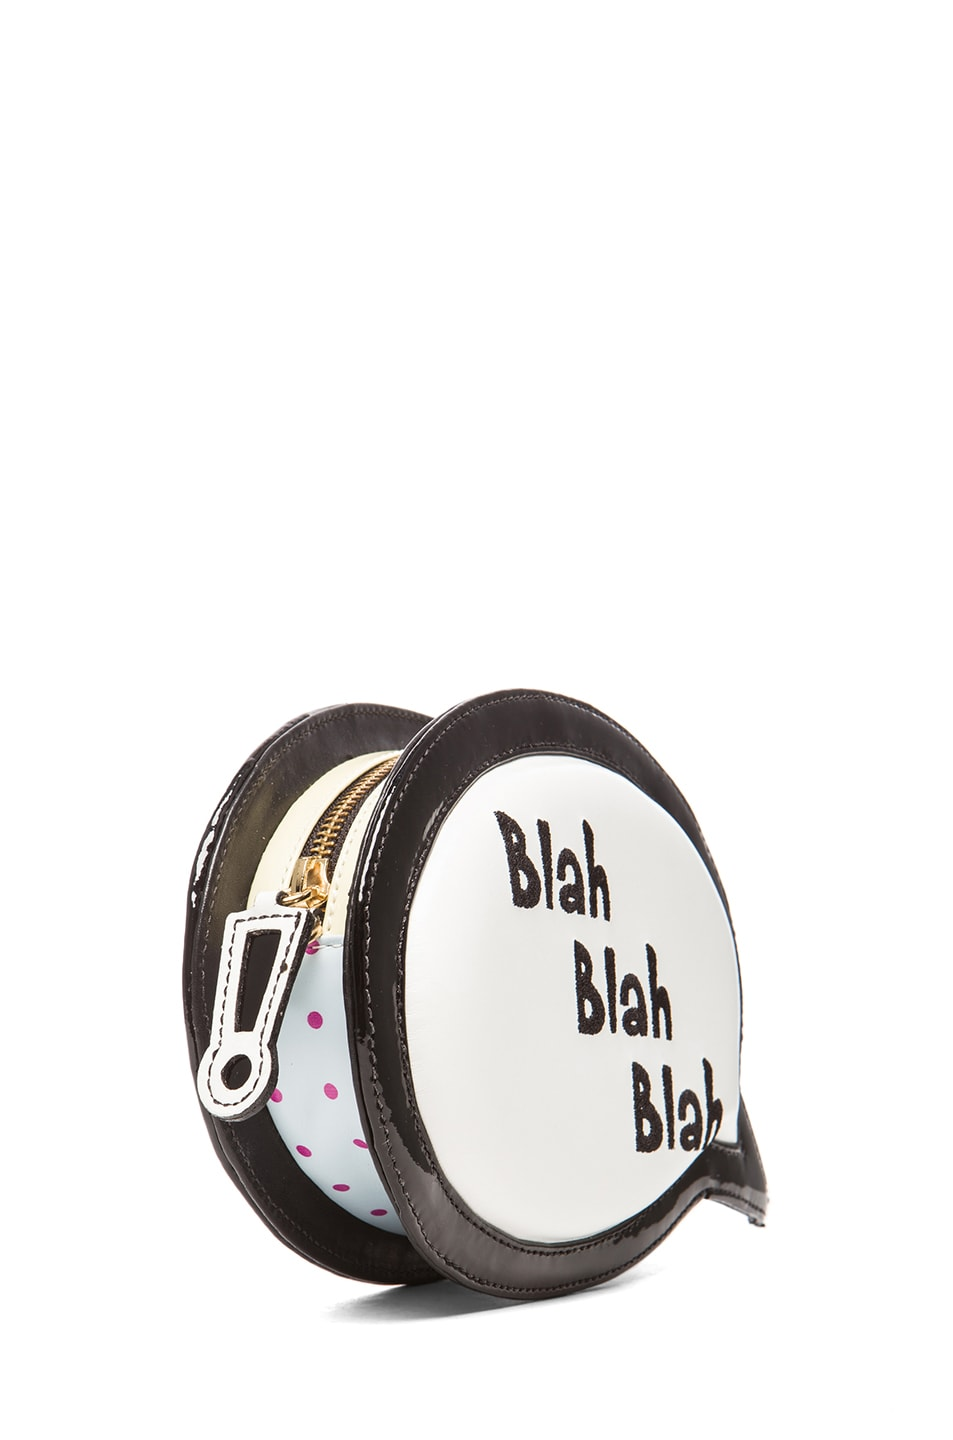 Image 3 of Sophia Webster Speech Bubble Blah Blah Blah Bag in Black & White